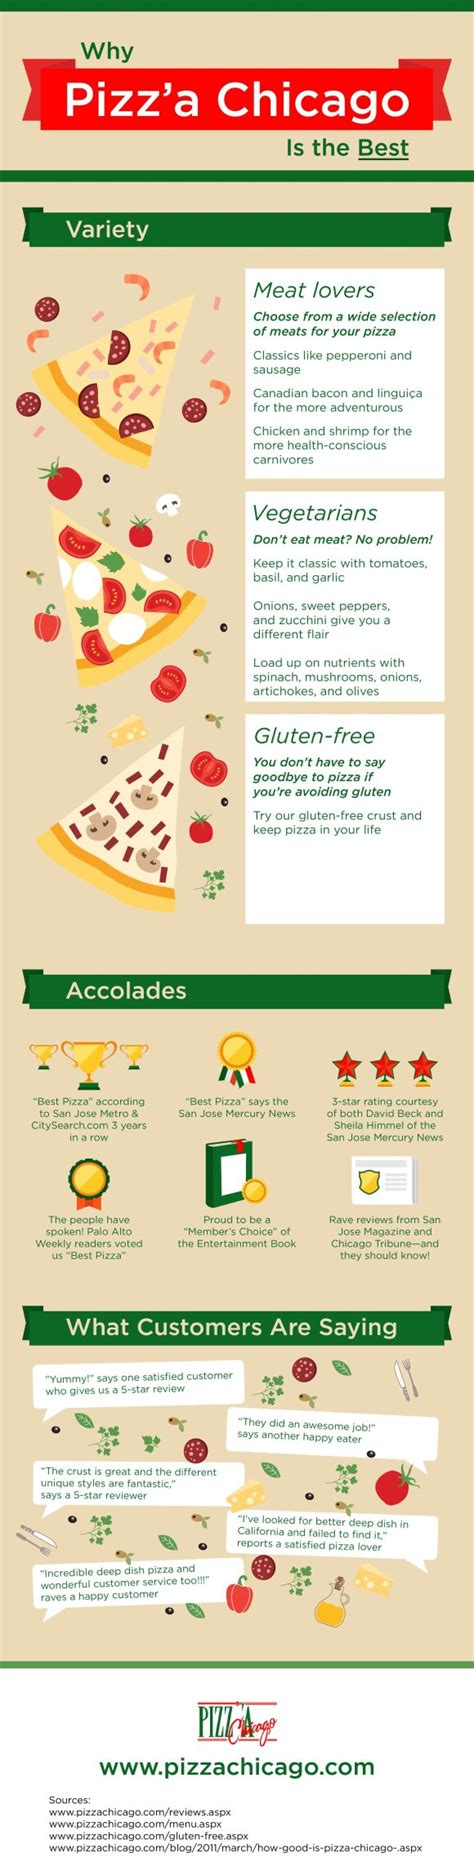 Pizza Chicago San Jose Why Pizz A Chicago Is The Best Infographic